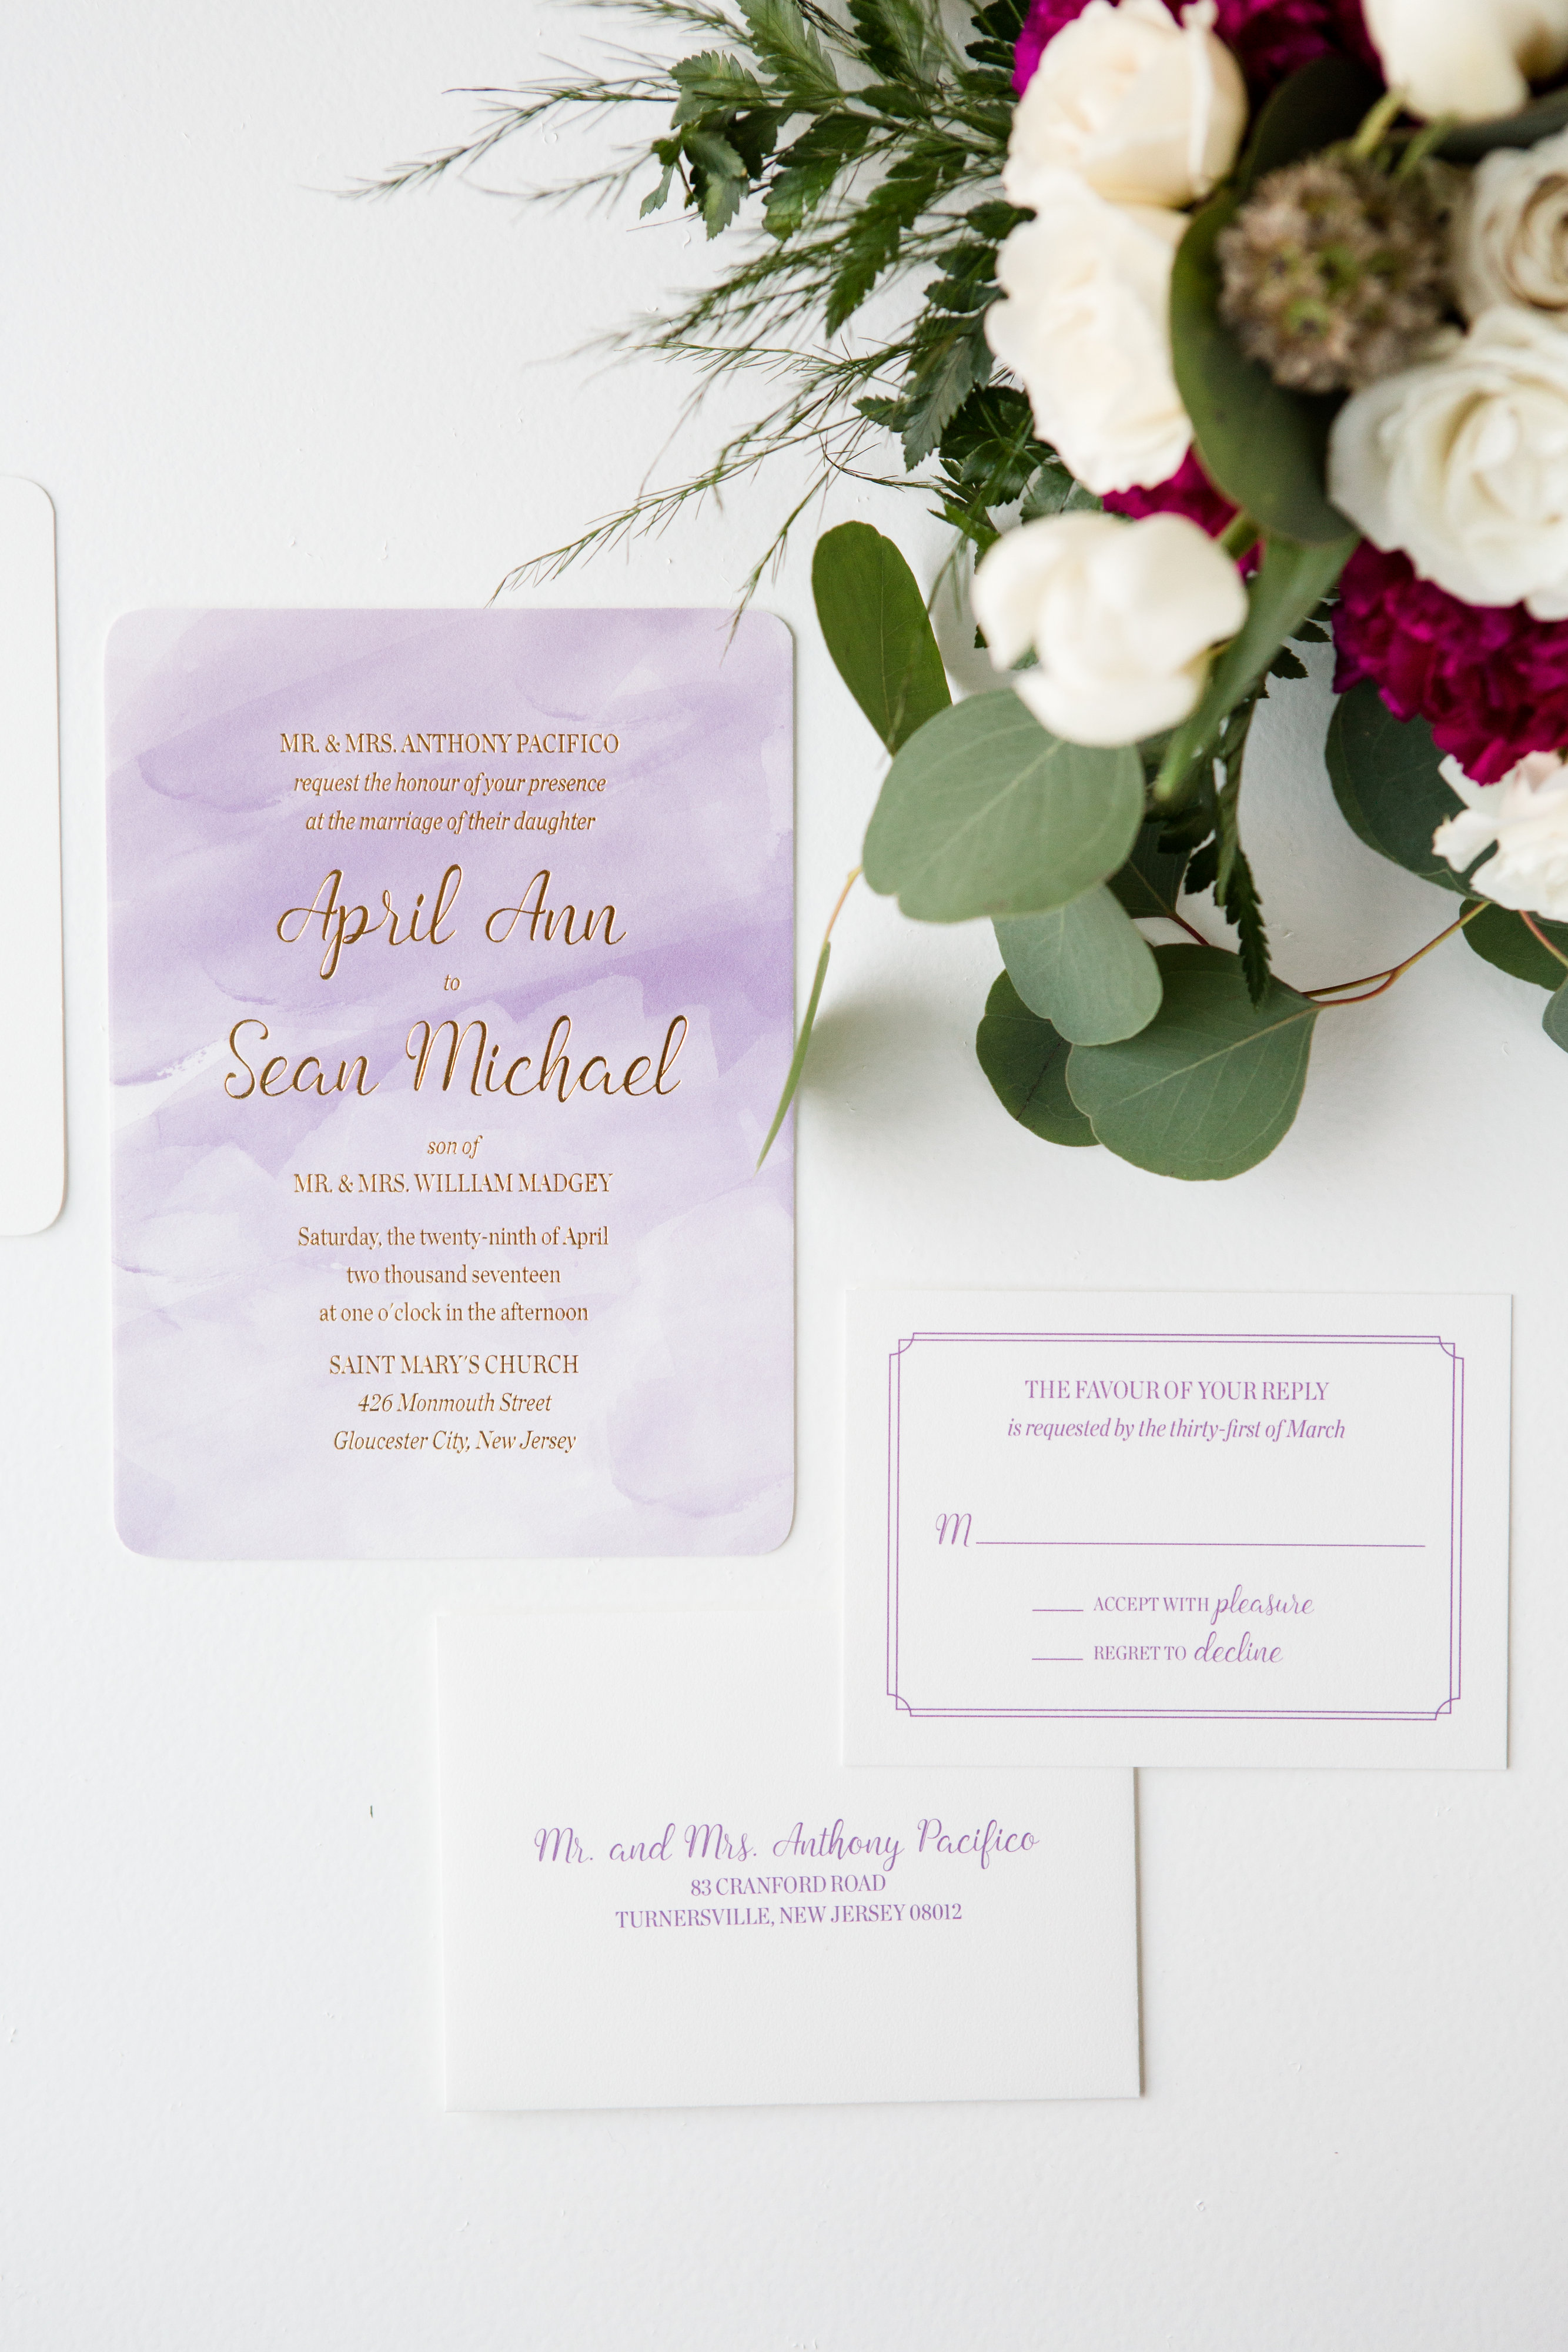 Purple watercolor background, gold foil stamping, formal wedding invitation